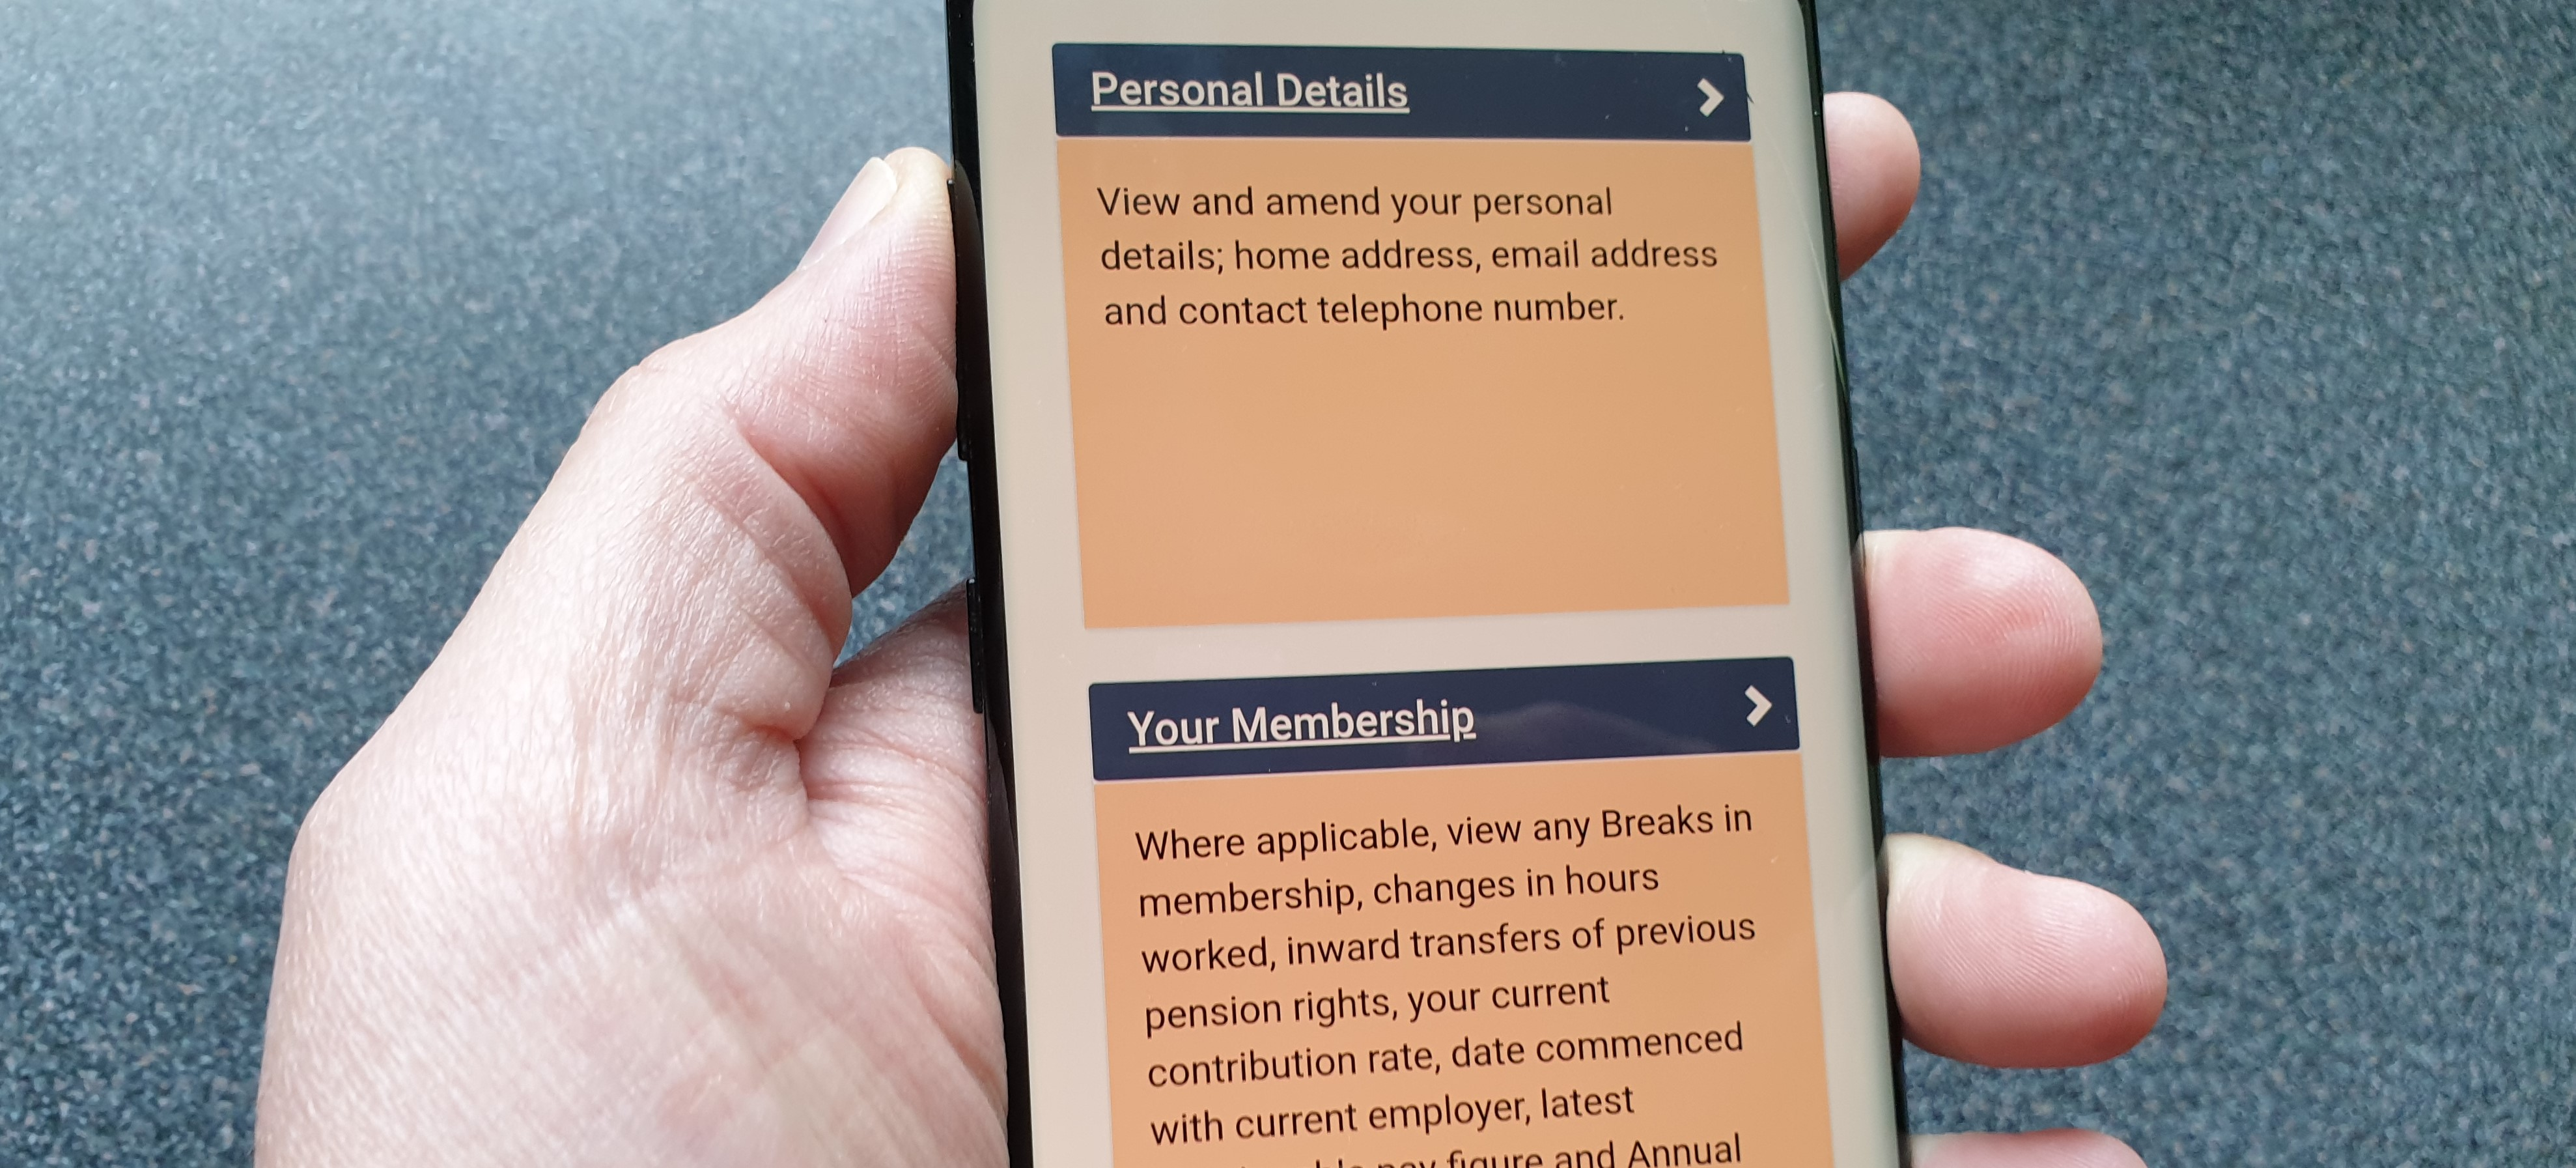 MyPension displayed on a mobile device